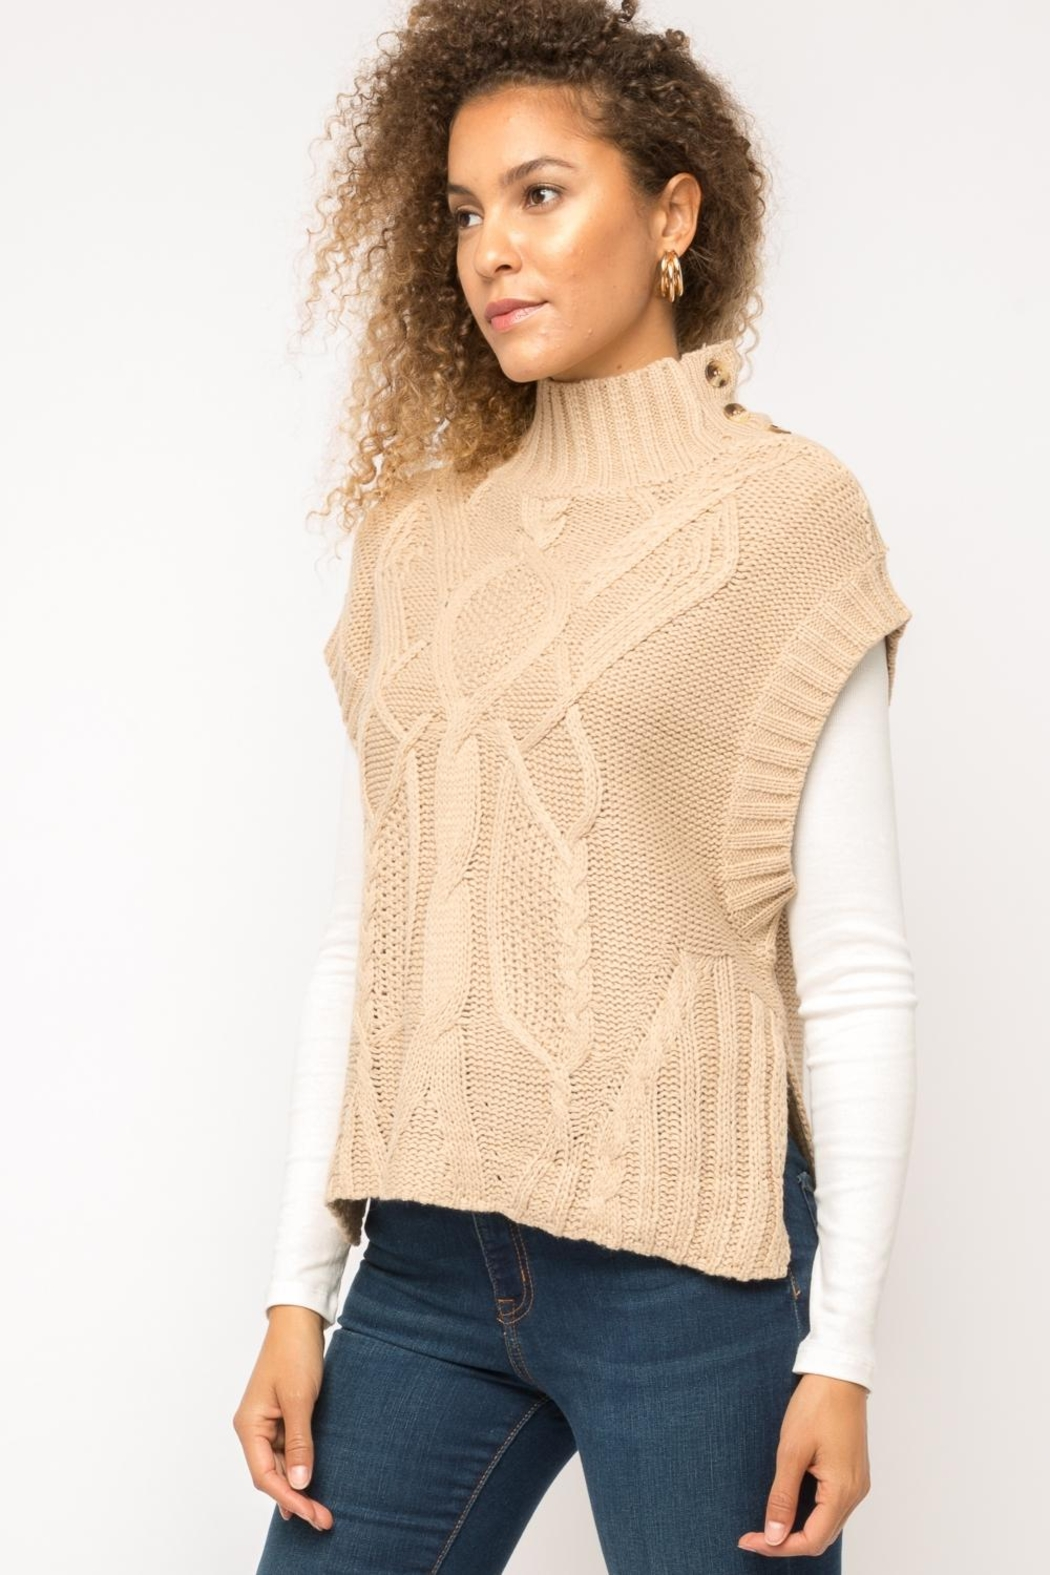 Mystree Cable Knit Sweater-Vest - Main Image